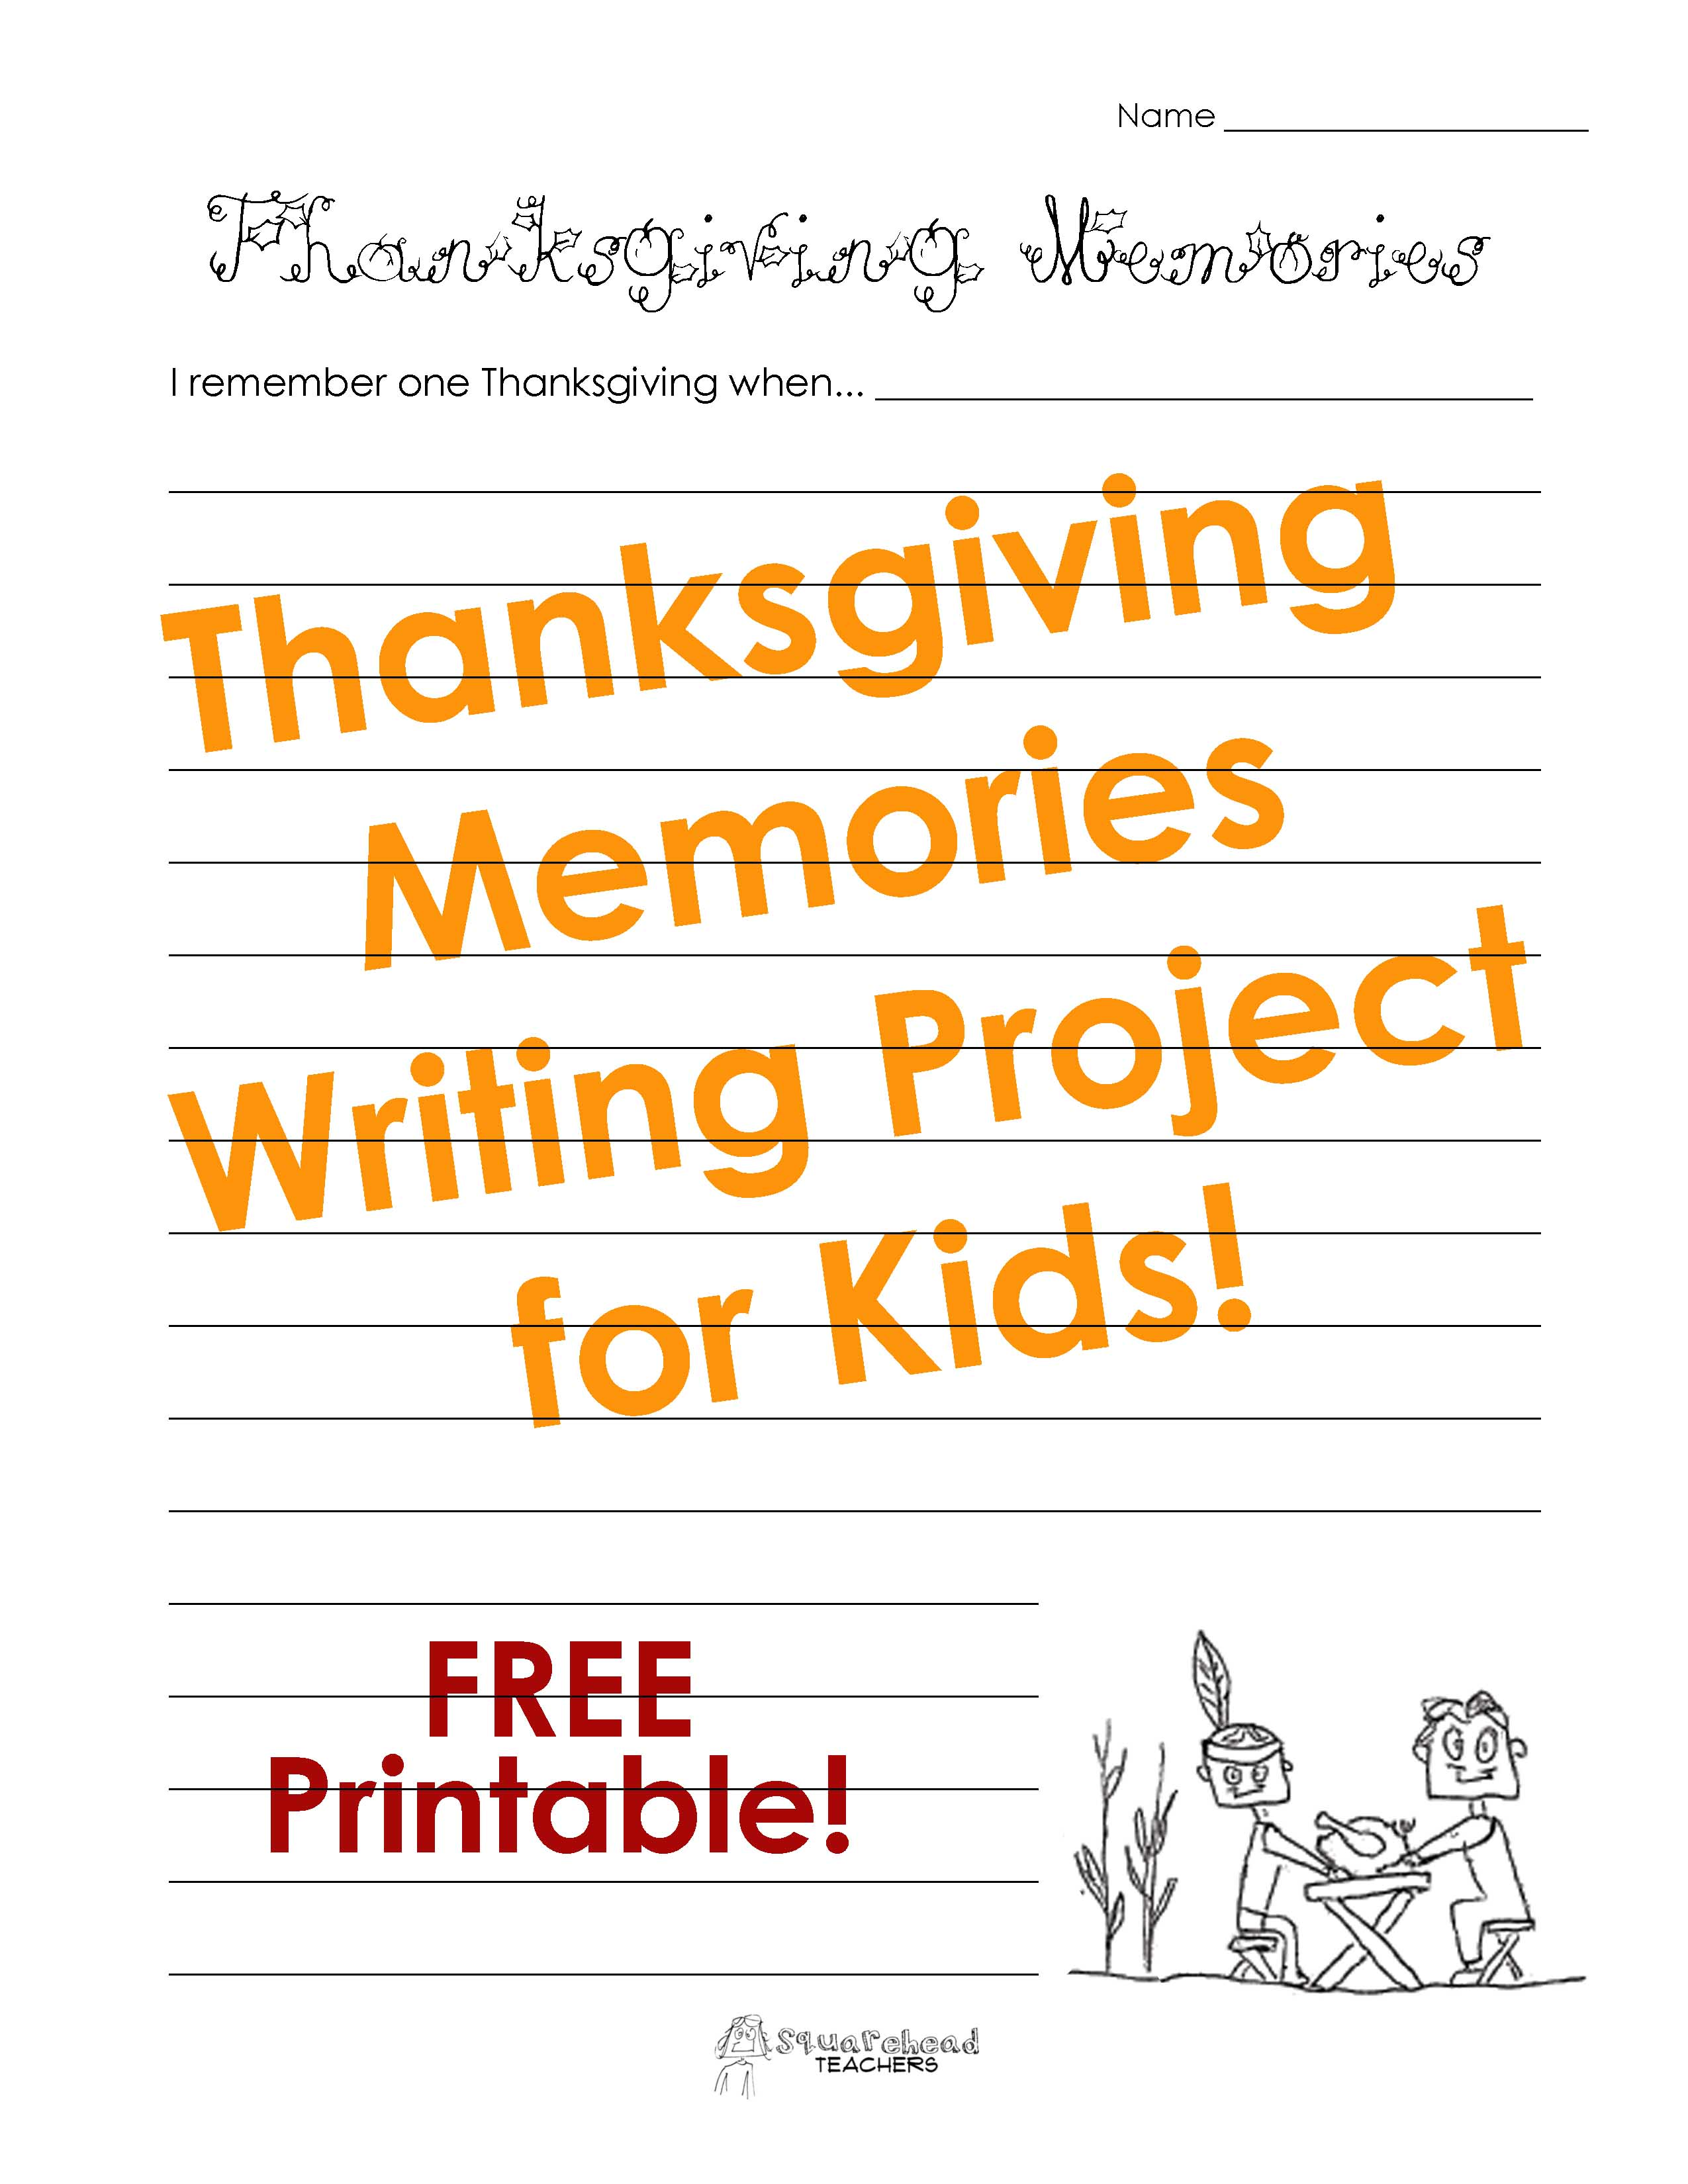 writing prompts squarehead teachers thanksgiving memories picture sticker